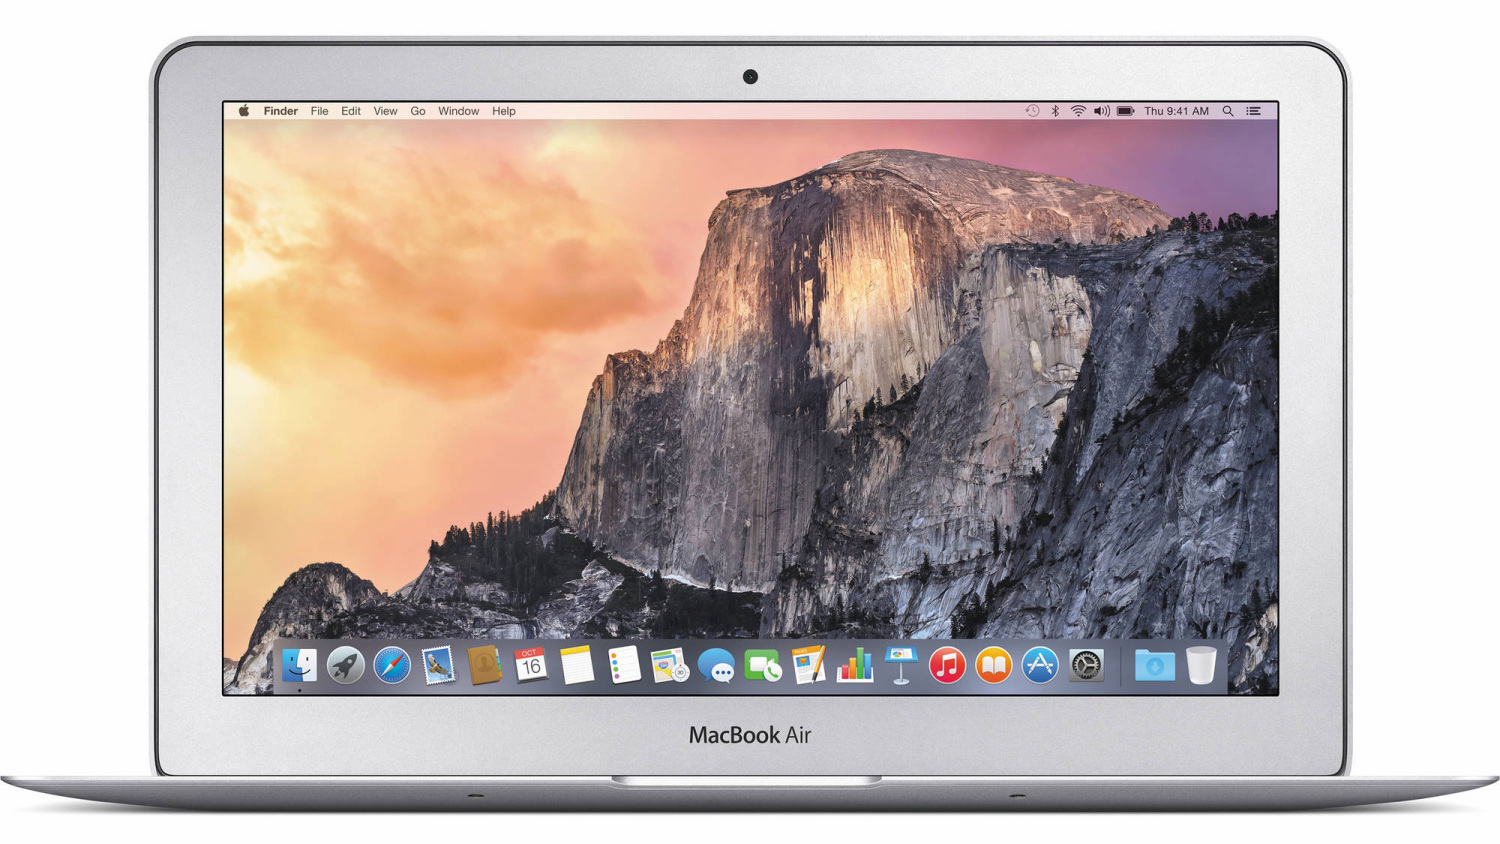 macbook-air 2016 with 15 inchj